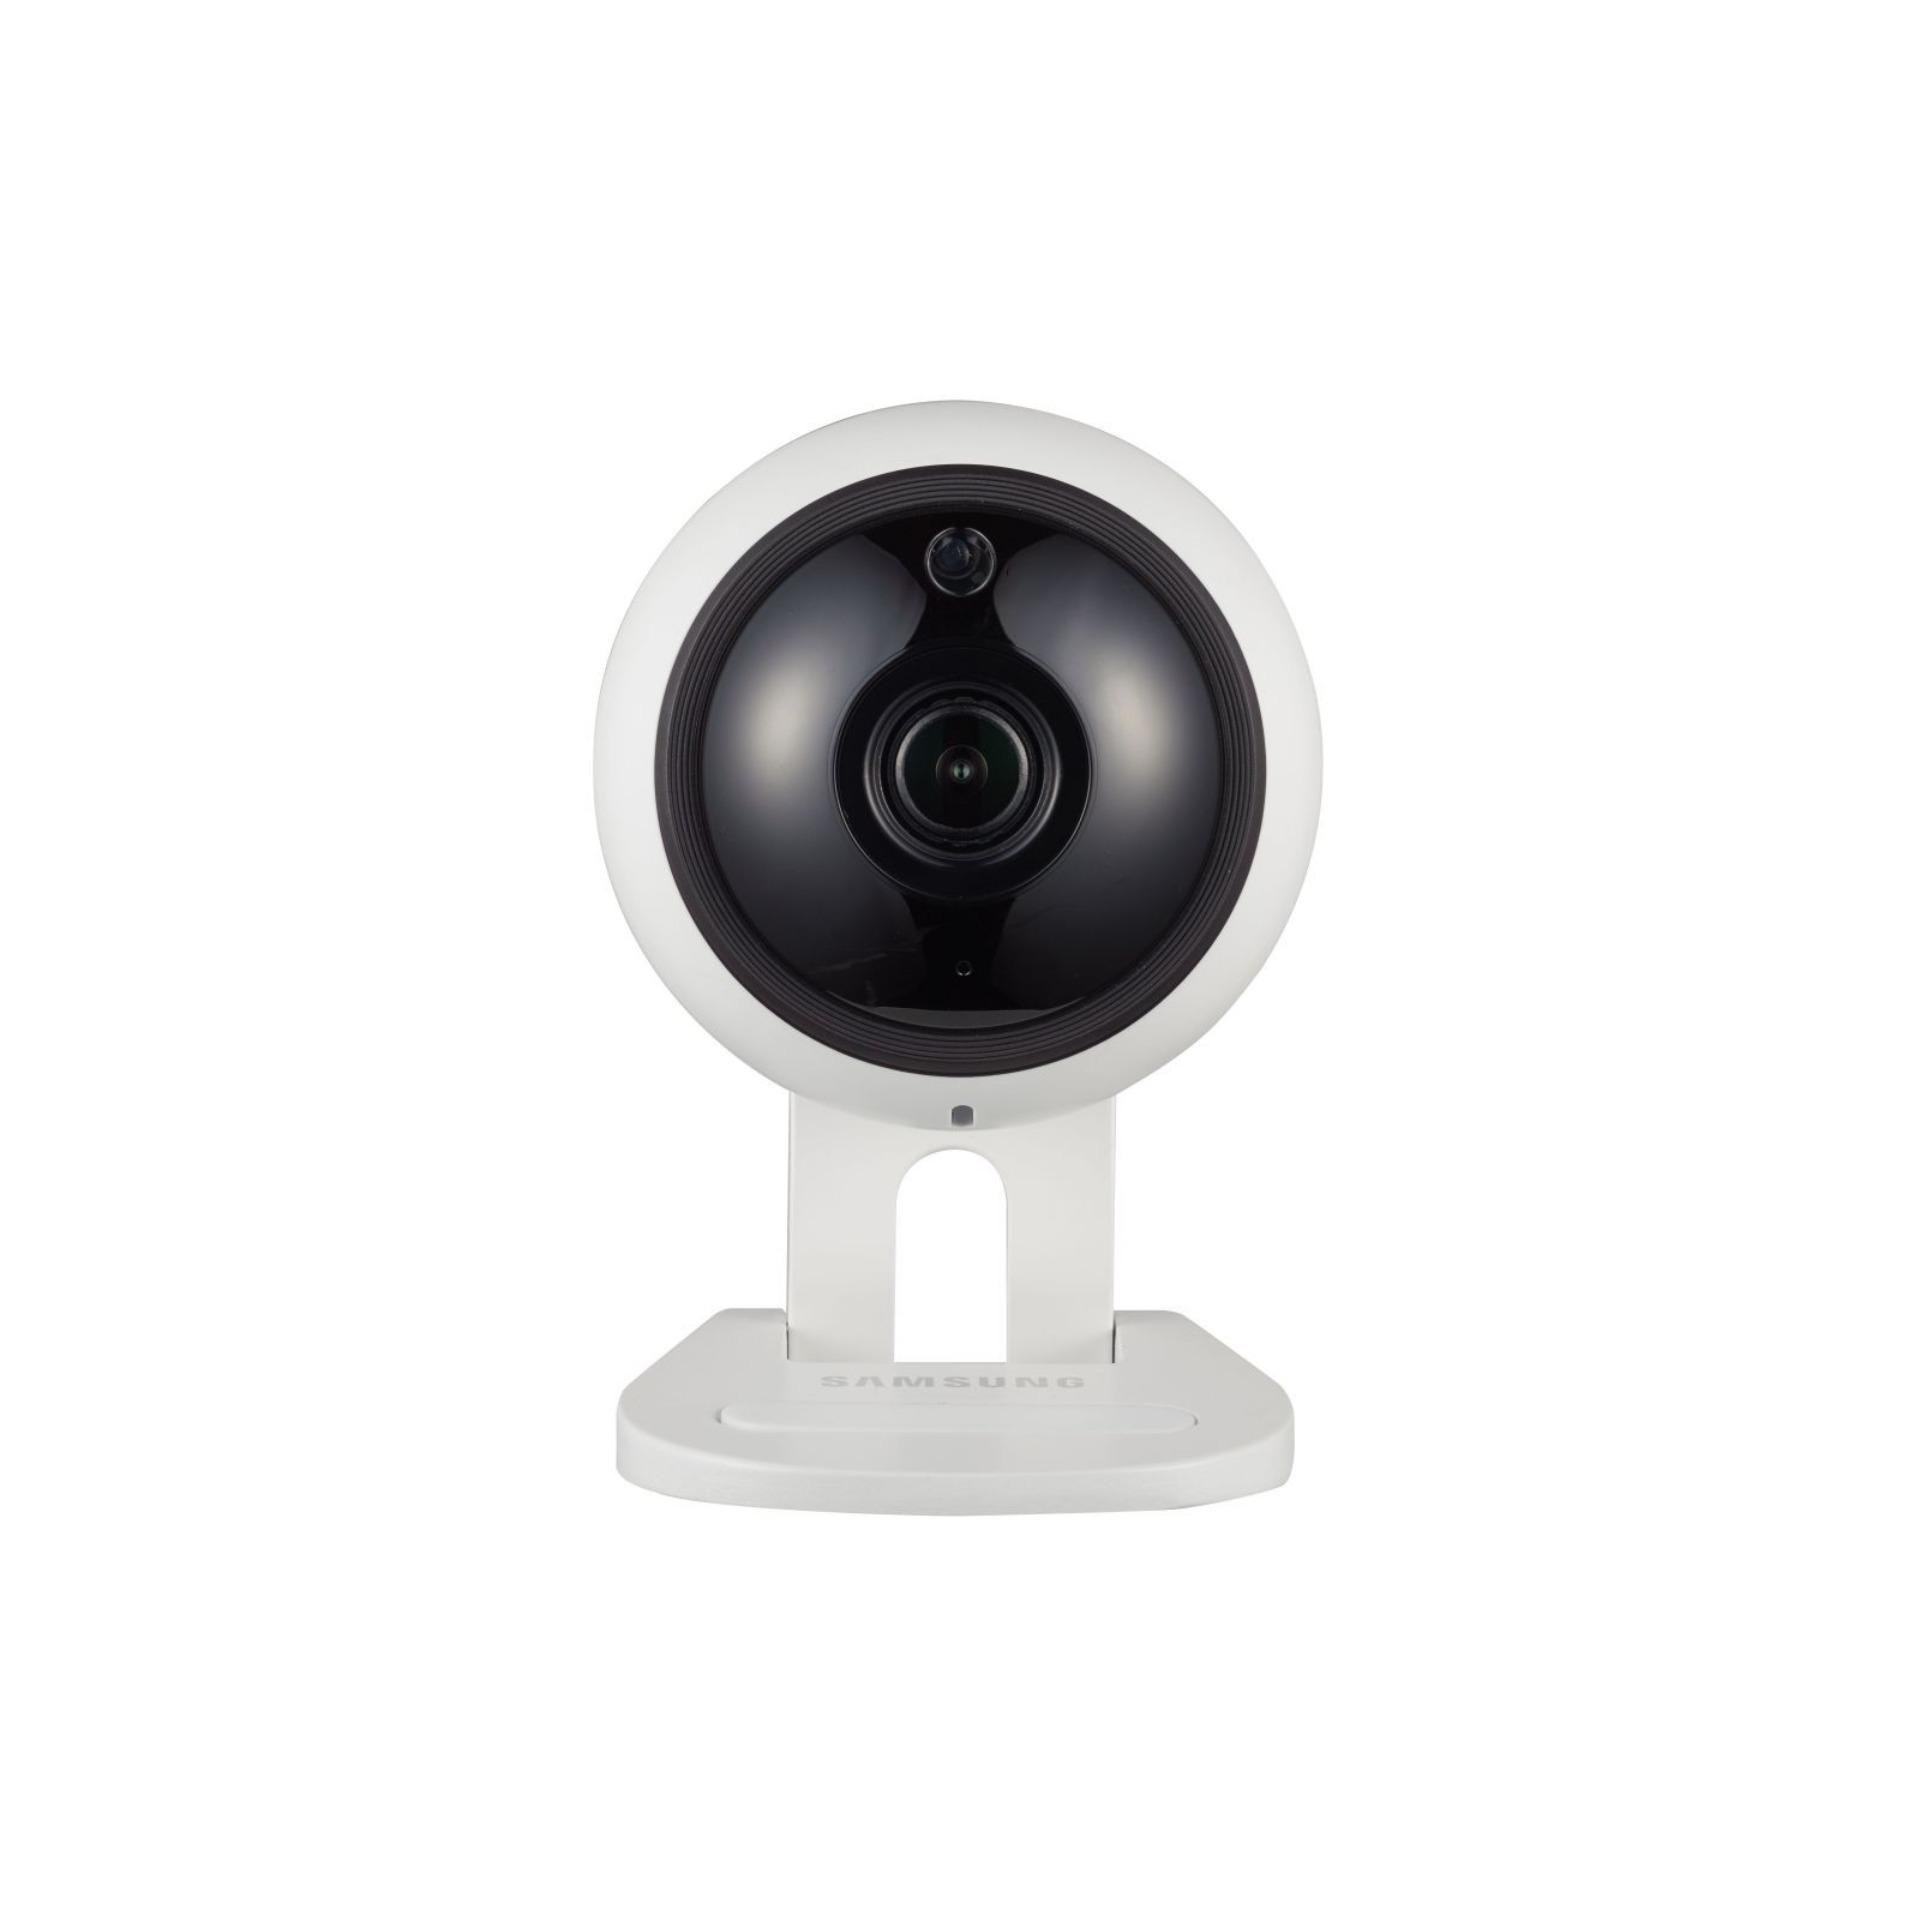 Latest Samsung Ip Cameras Products Enjoy Huge Discounts Lazada Sg Smartcam Snh P6410bn V6431bn Full Hd Dual Band Camera